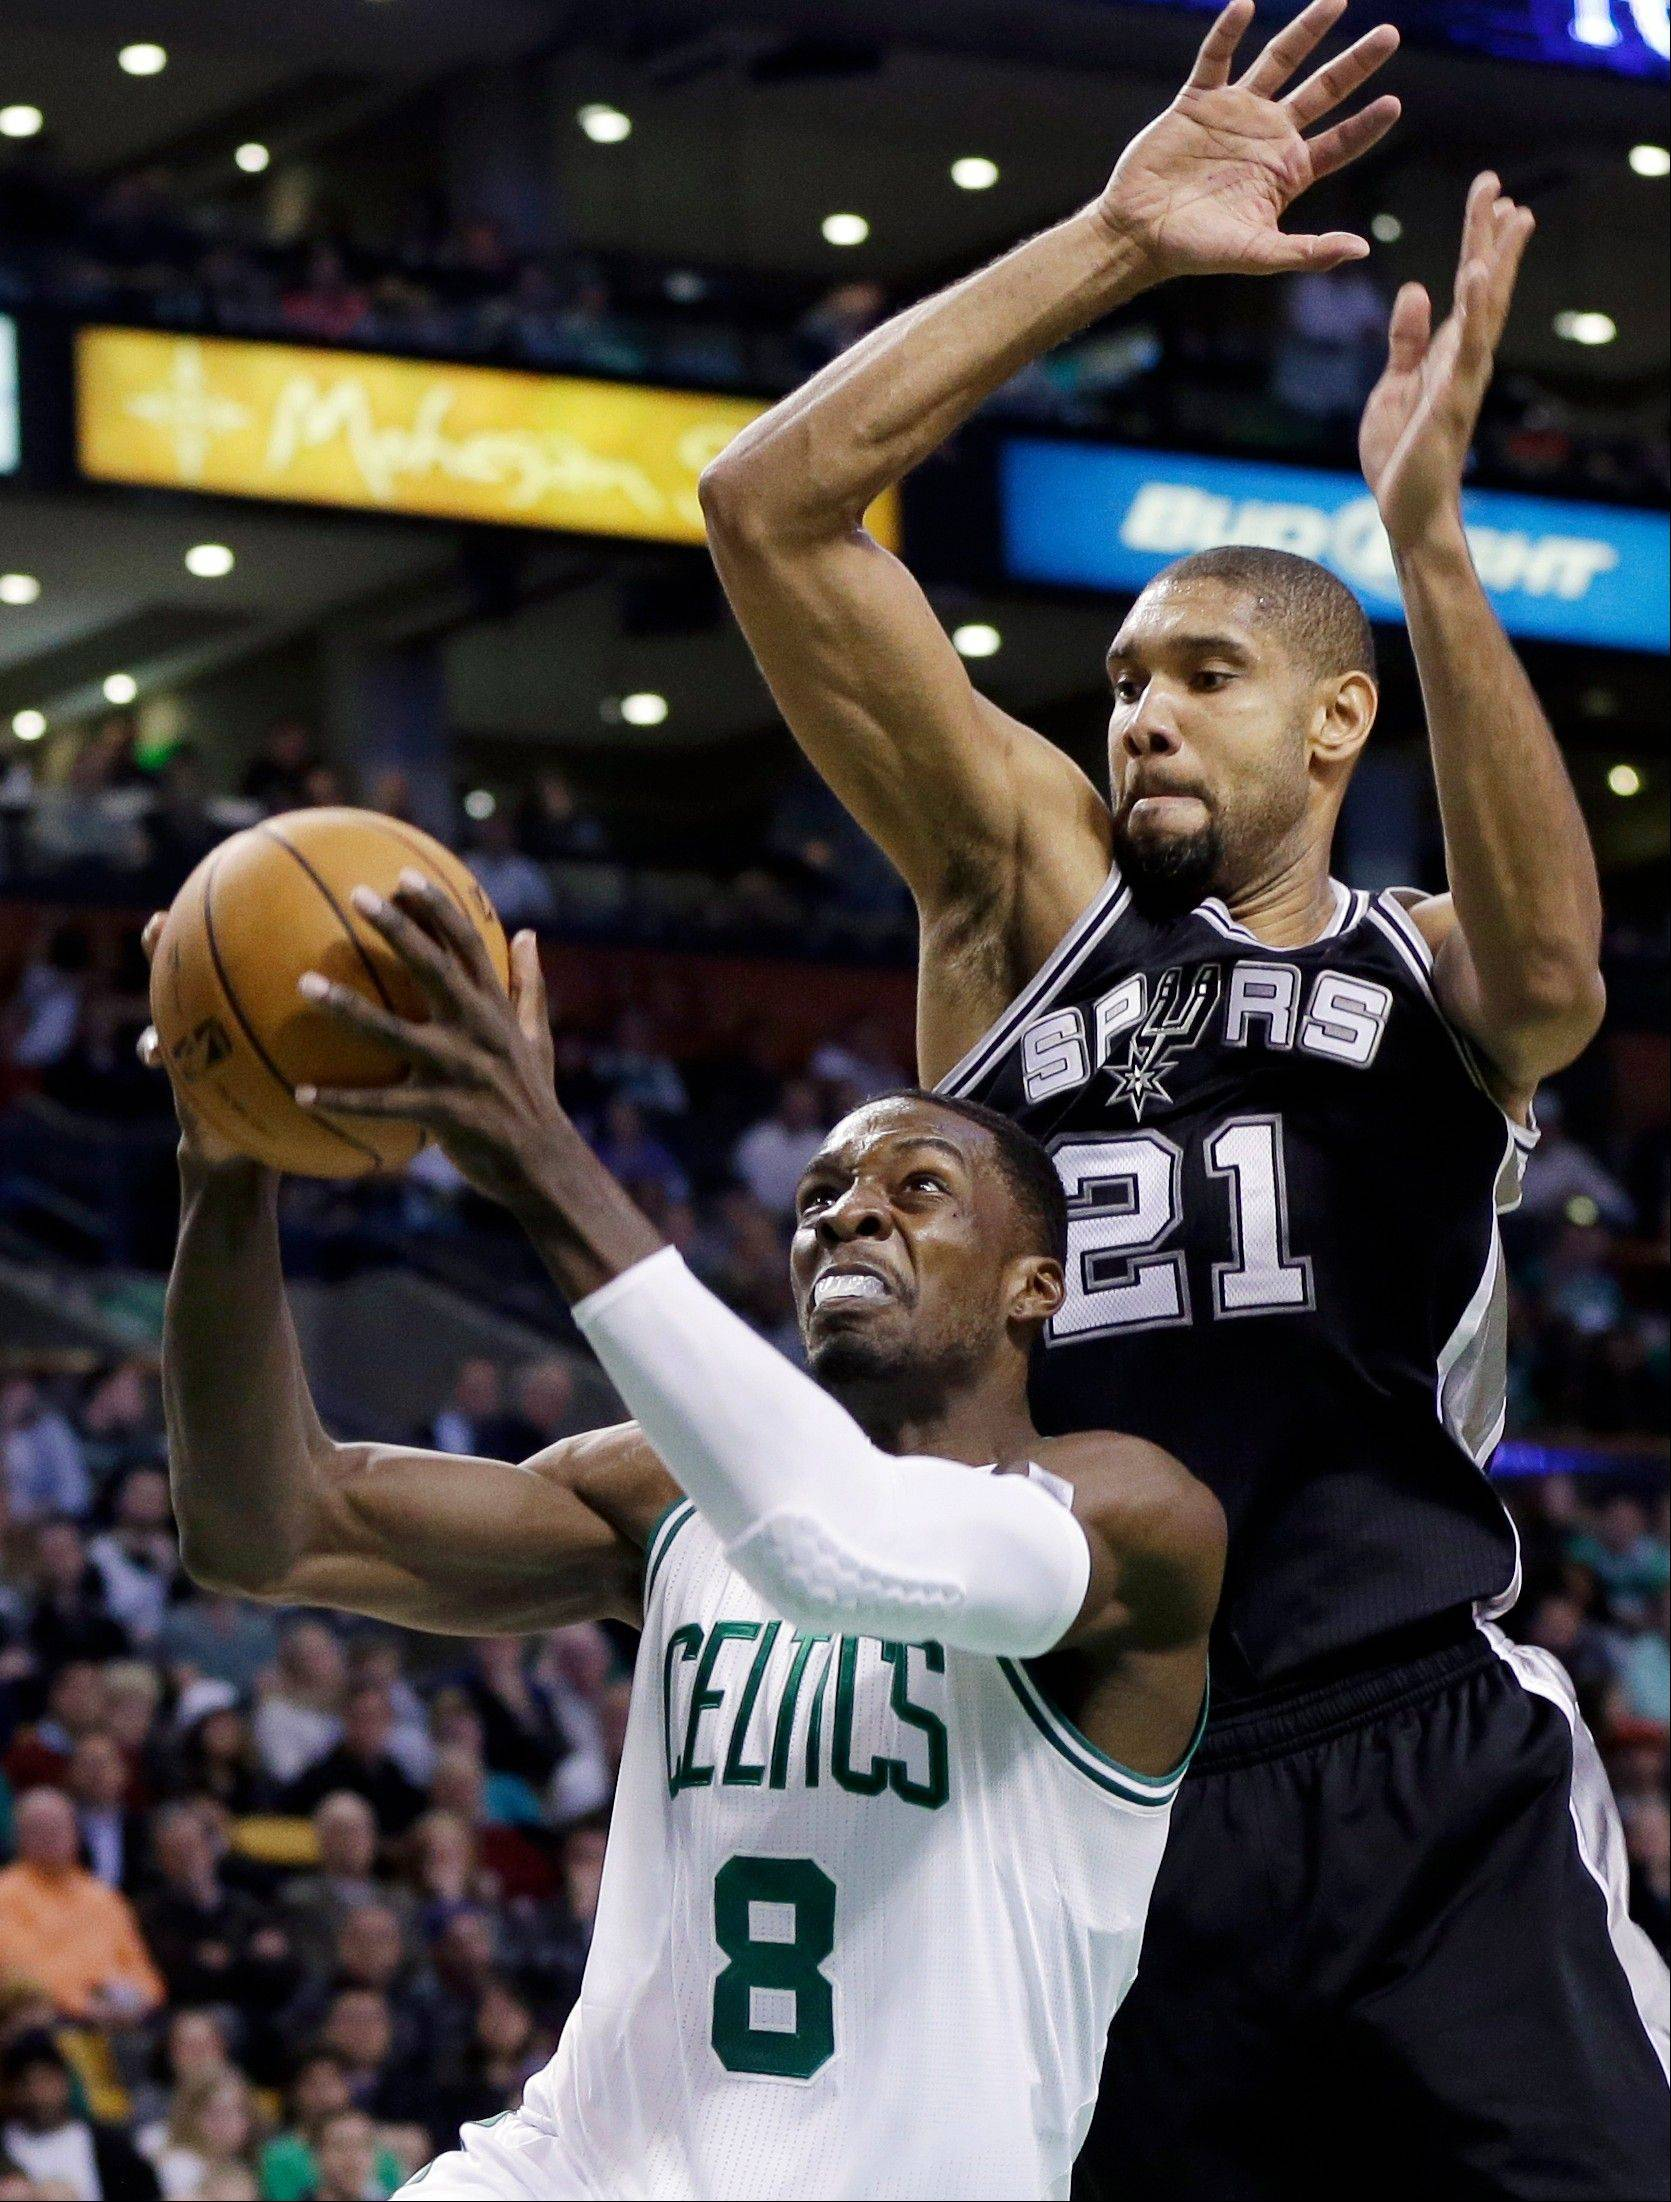 San Antonio Spurs power forward Tim Duncan (21) defends against Boston Celtics forward Jeff Green (8) during the second half Wednesday in Boston.